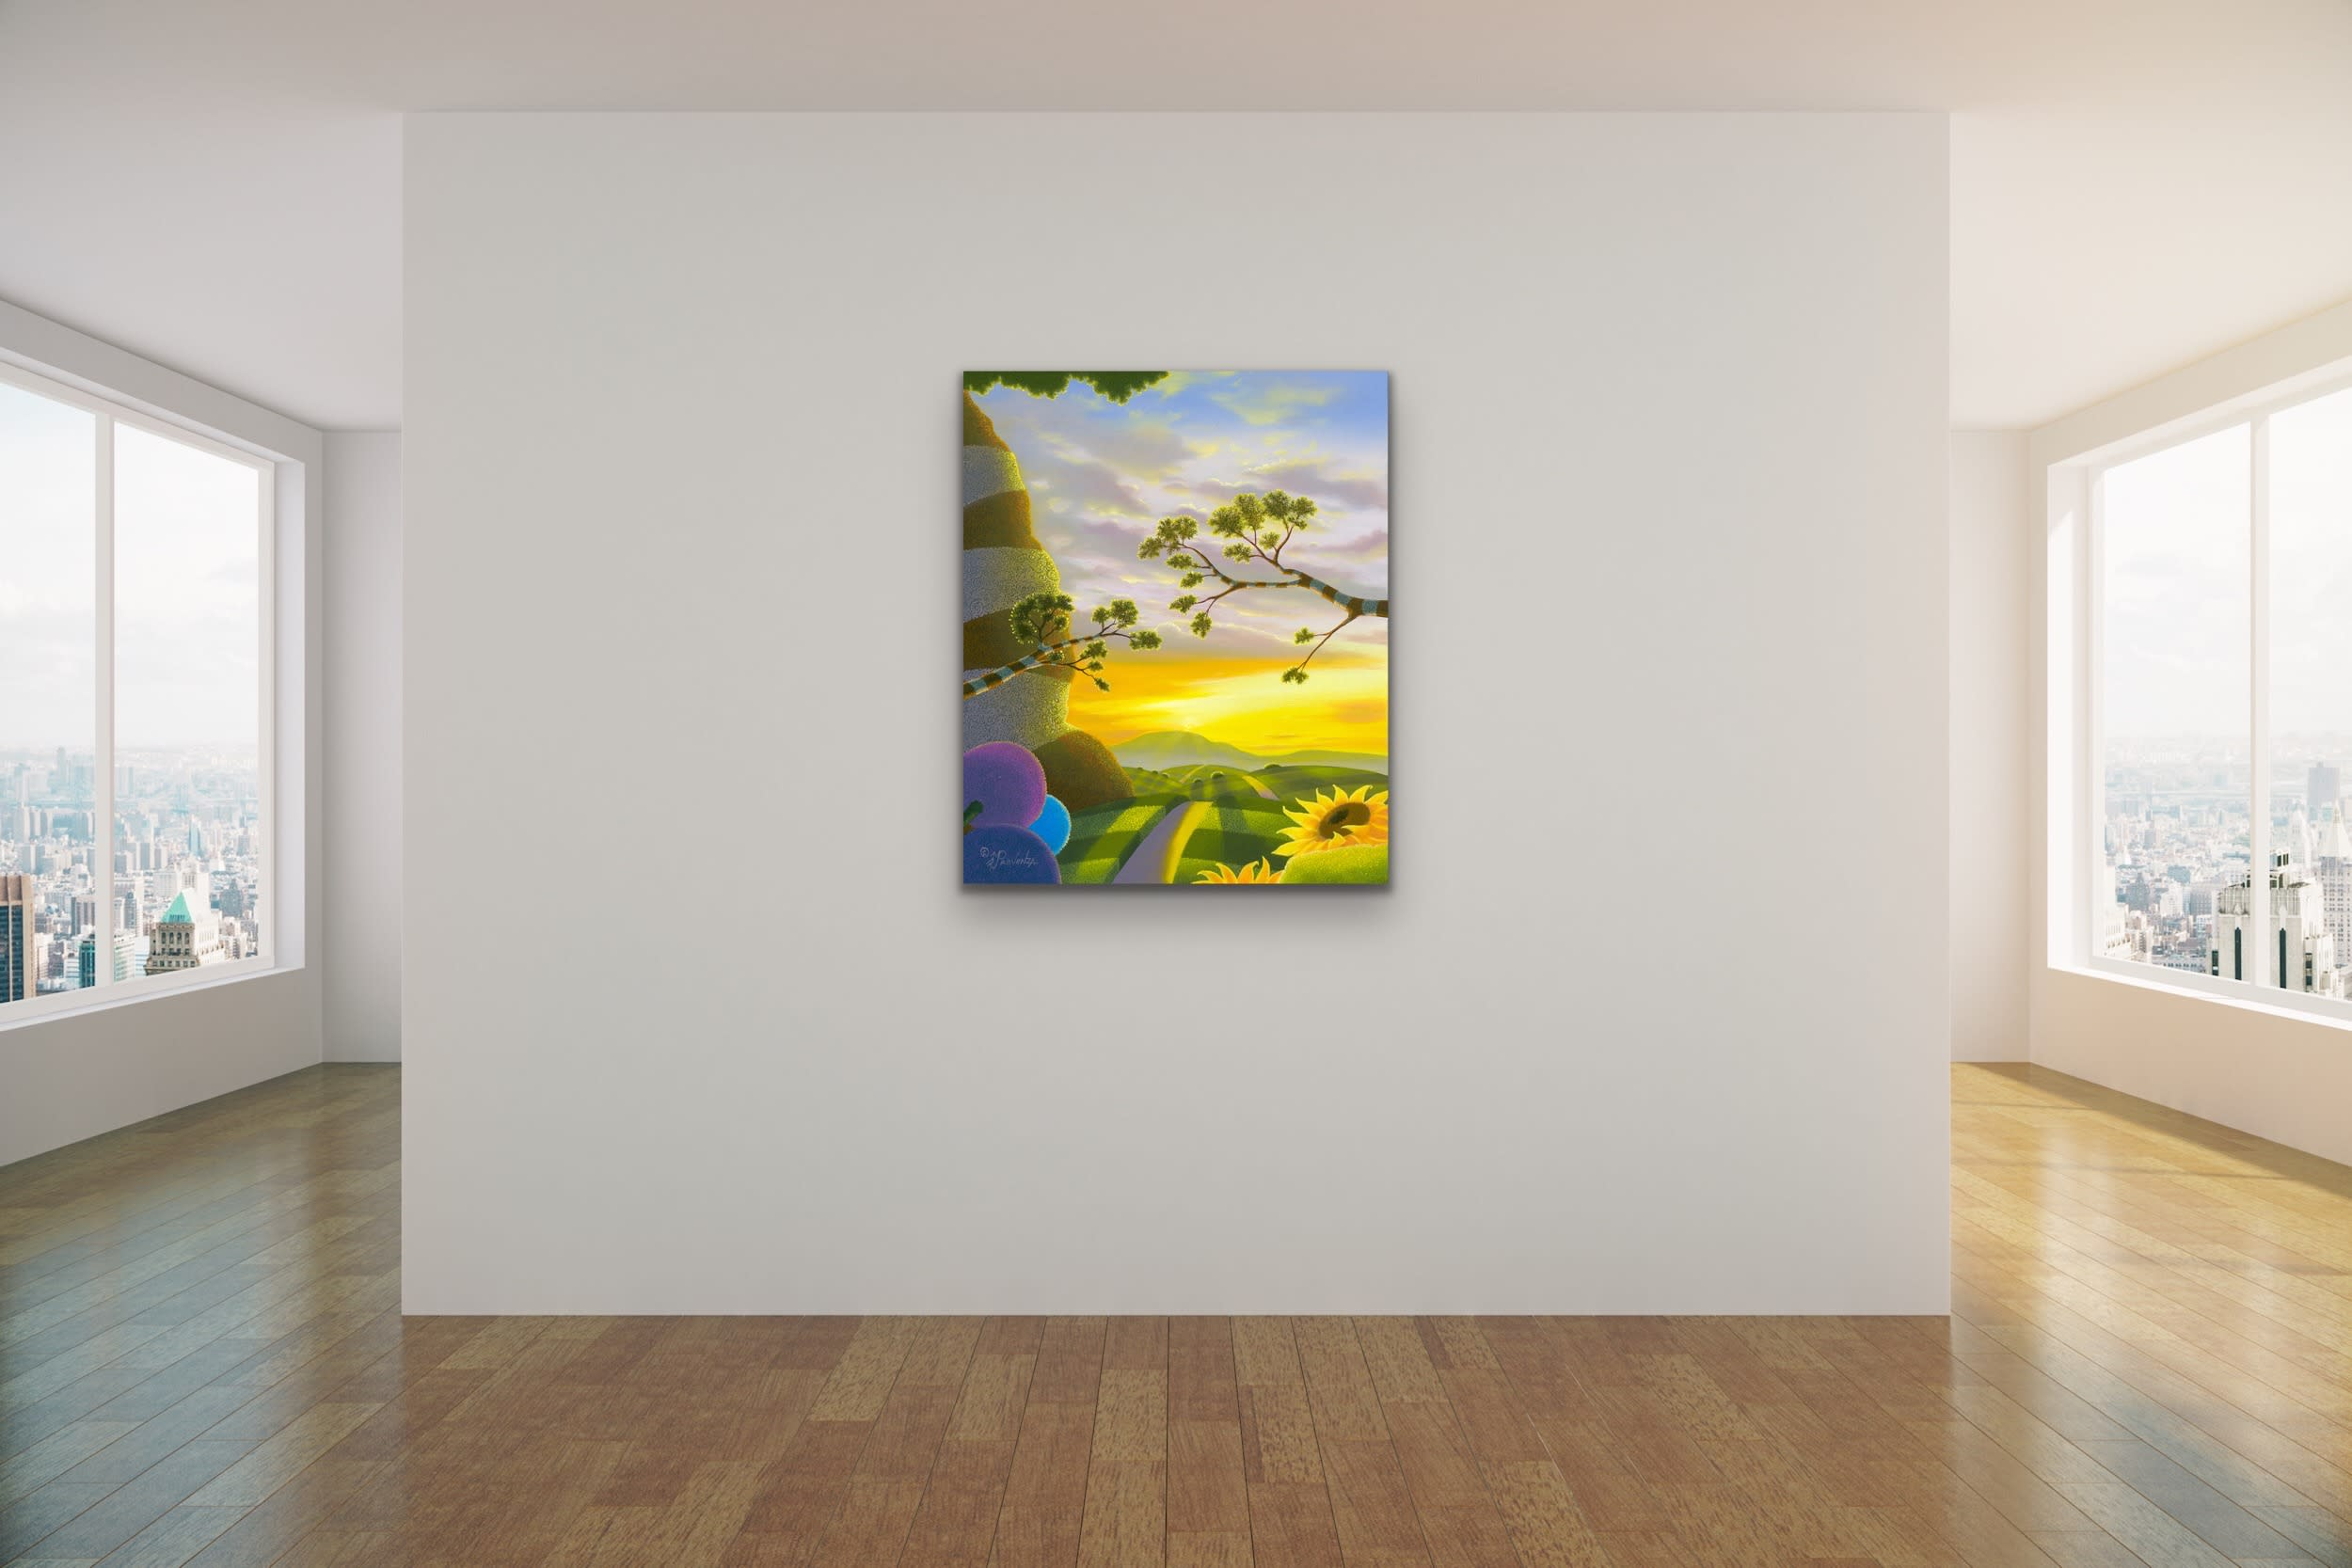 <div class='title'>           Michael Provenza Mock Ups Evo Art Maui Lahaina Gallery Pointilism Disney Artist Dreamscape Surreal Colorful Dots 14         </div>